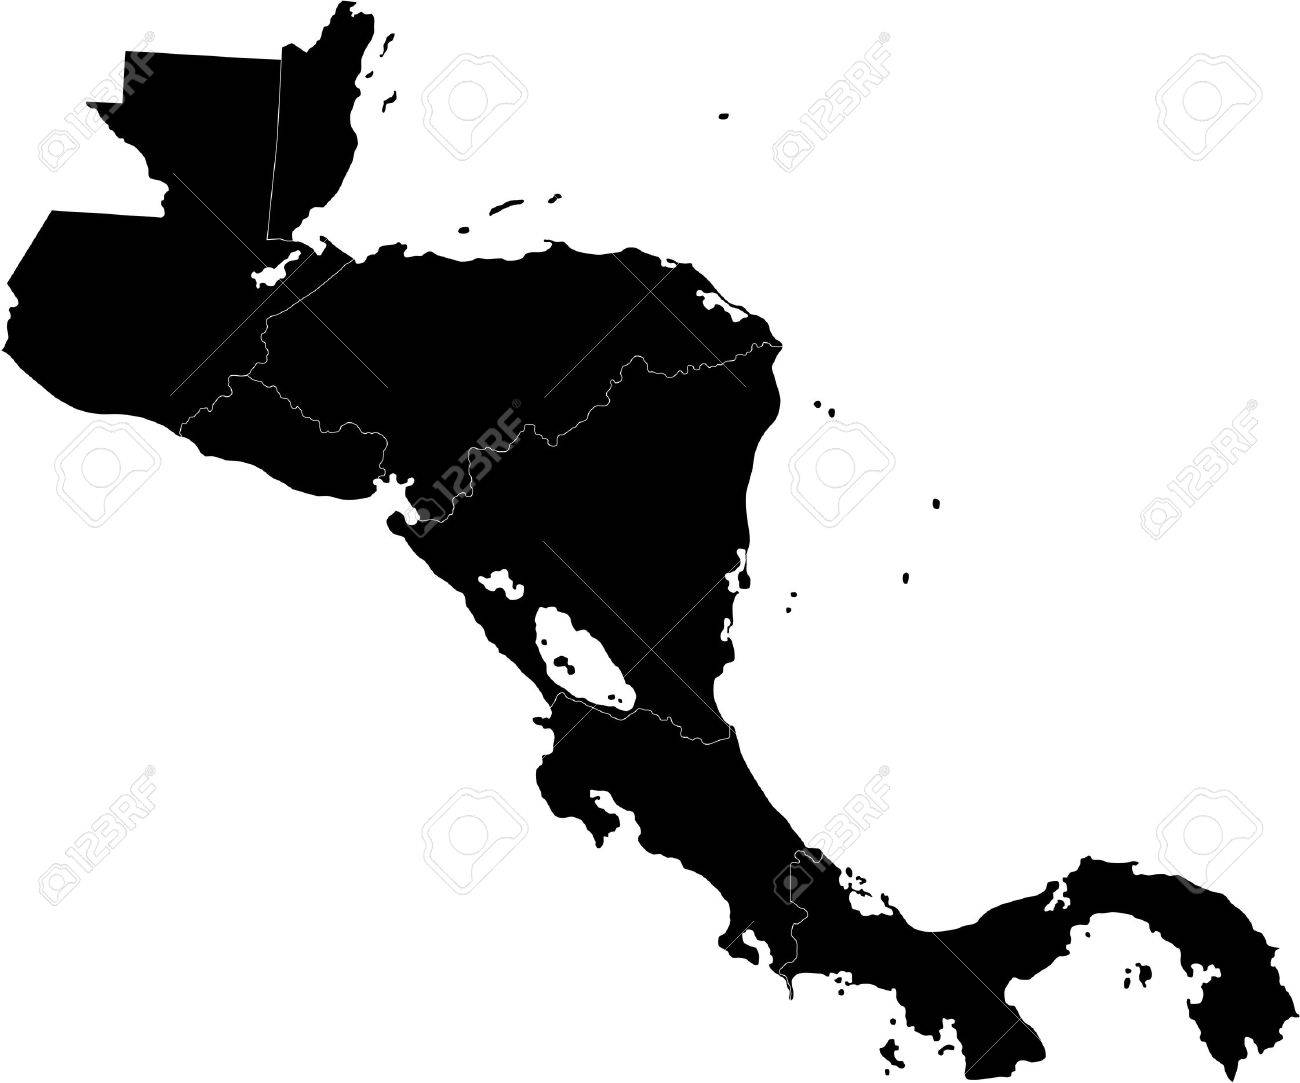 Black Central America Map With Country Borders Royalty Free Cliparts